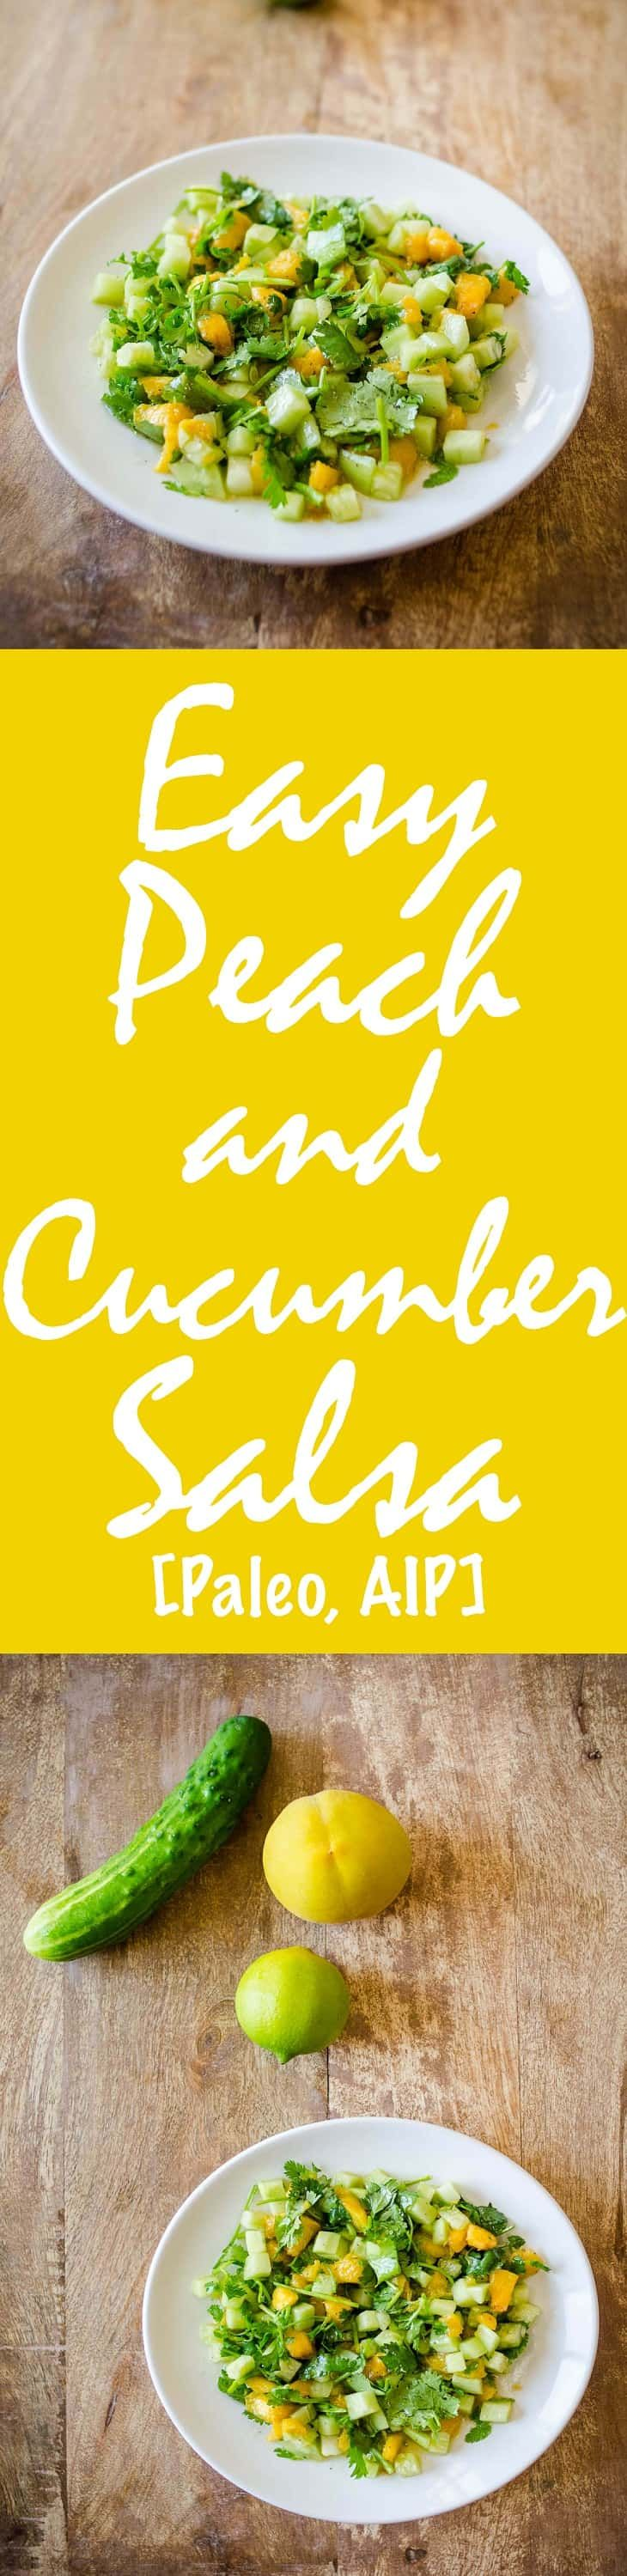 Easy Peach and Cucumber Salsa Recipe [Paleo, AIP] #paleo #aip #recipes - http://paleomagazine.com/easy-peach-cucumber-salsa-recipe